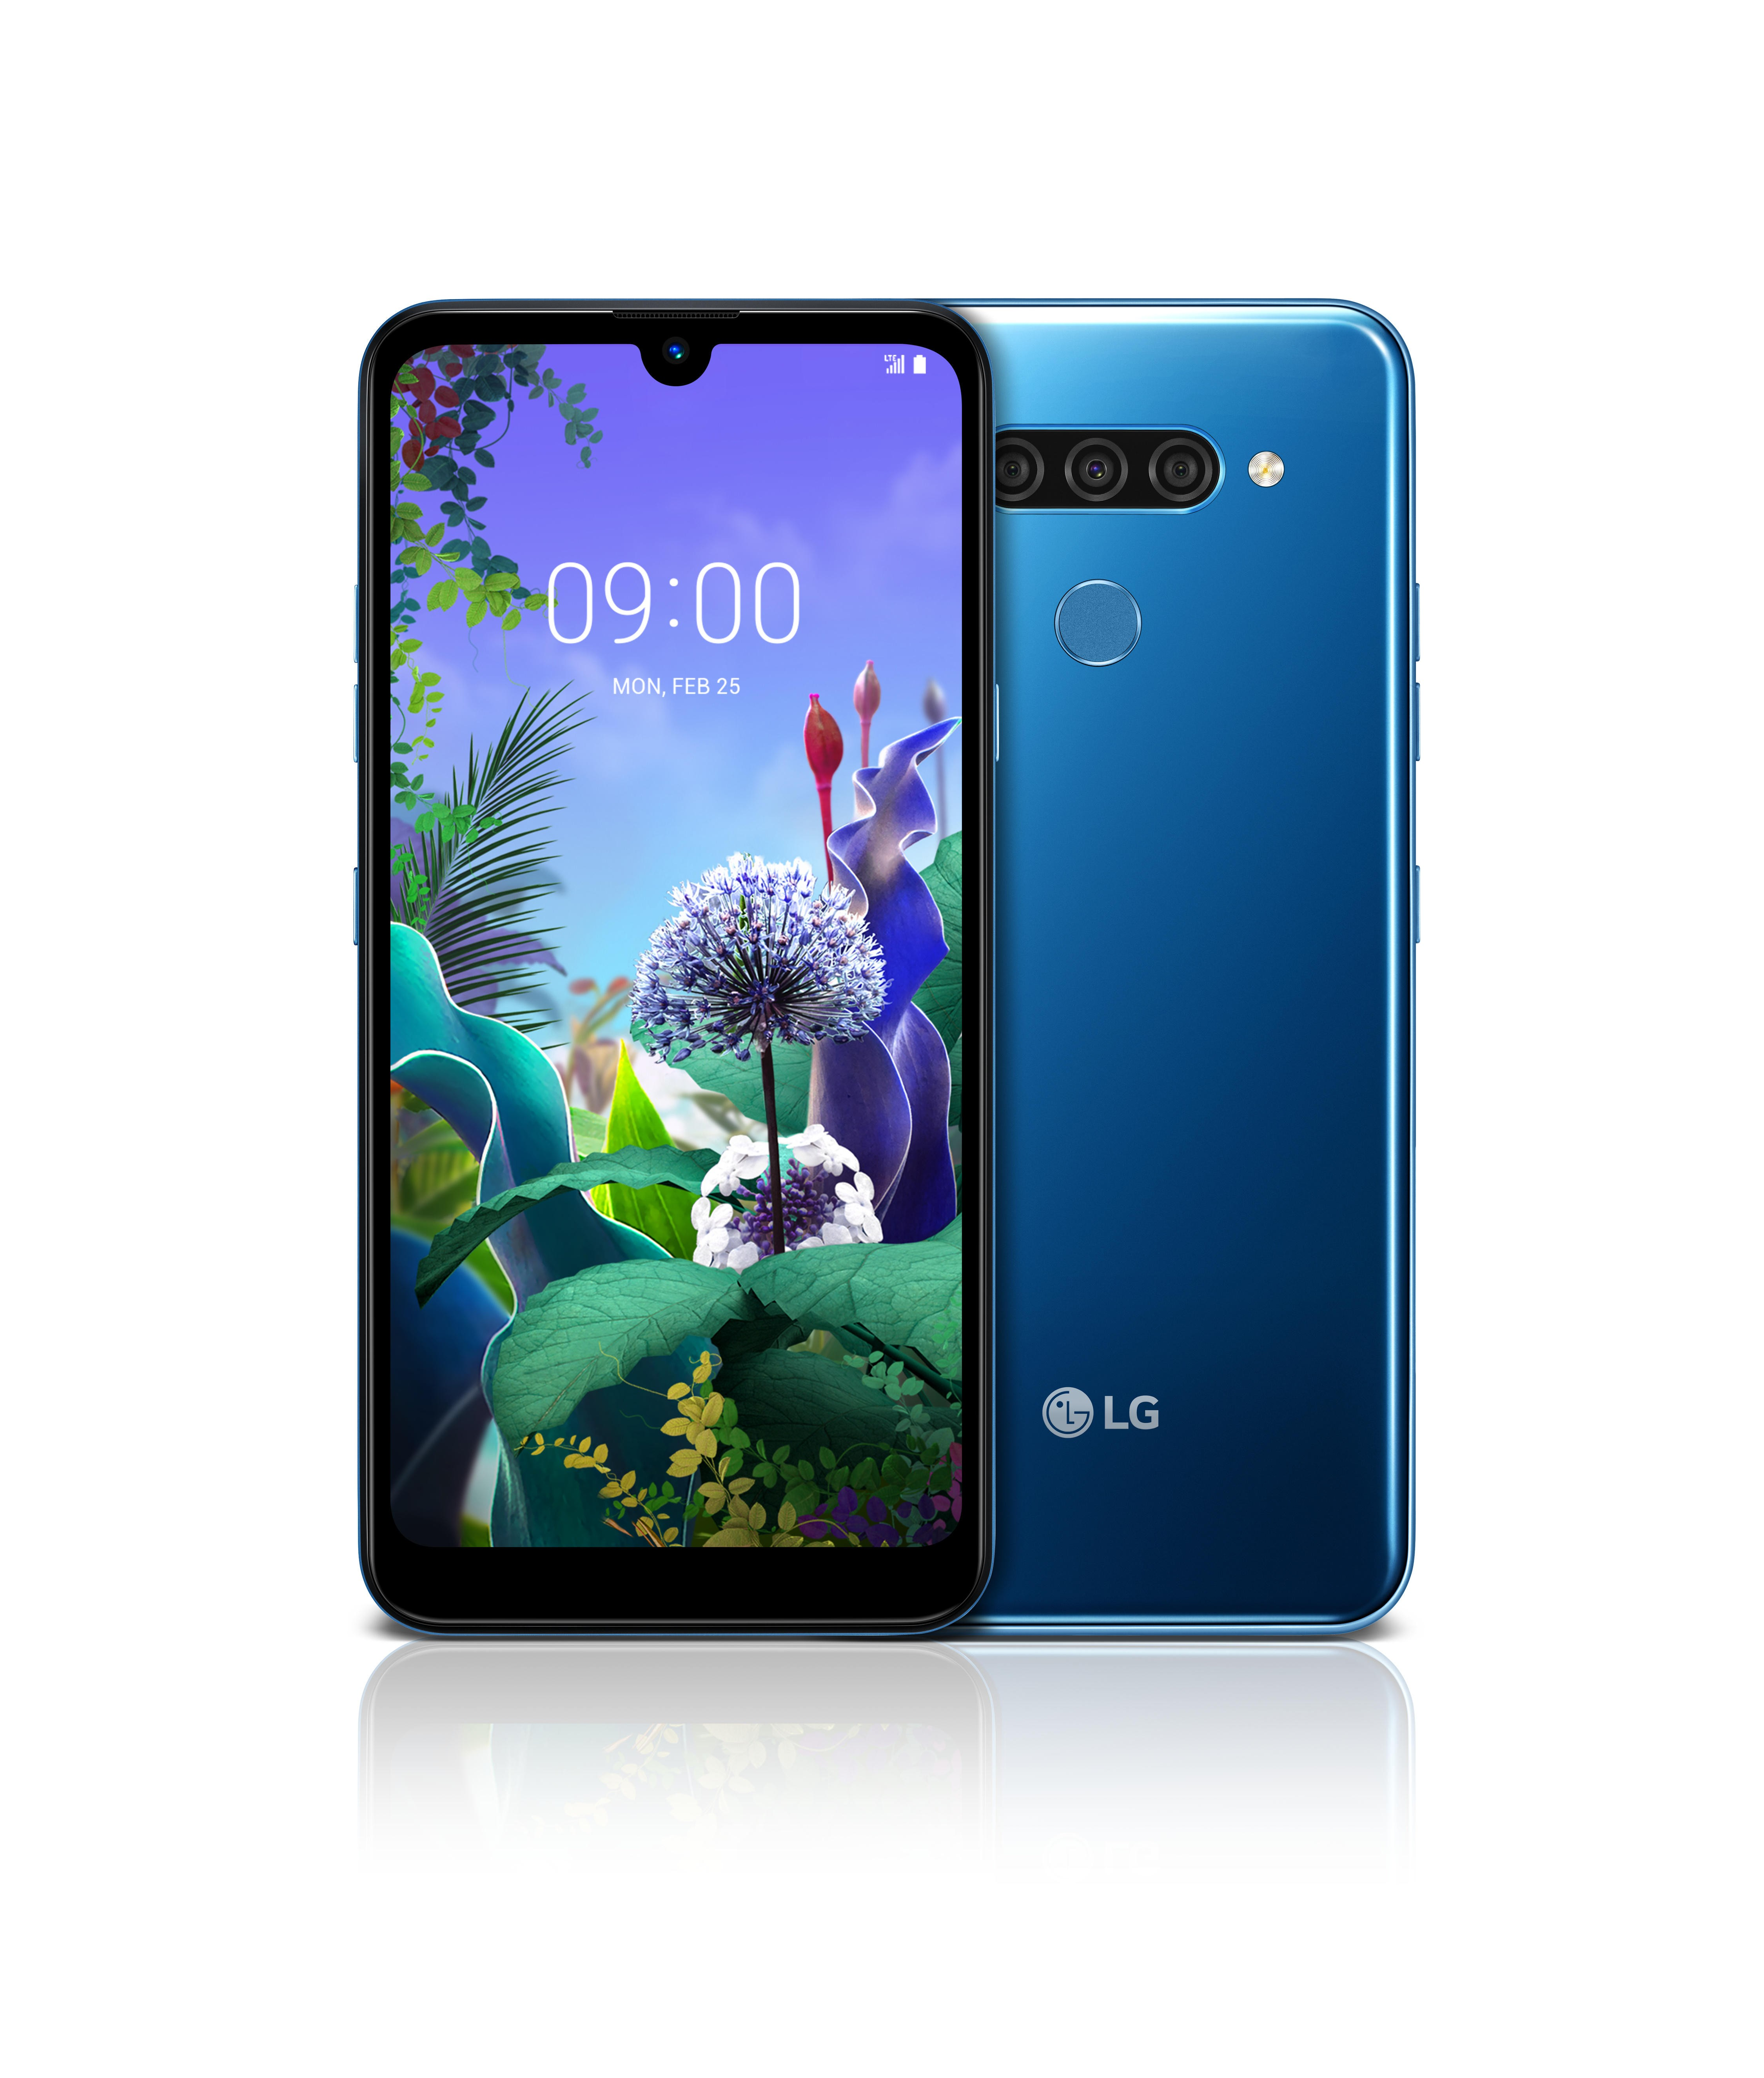 The front and rear view of the LG Q60 in New Moroccan Blue